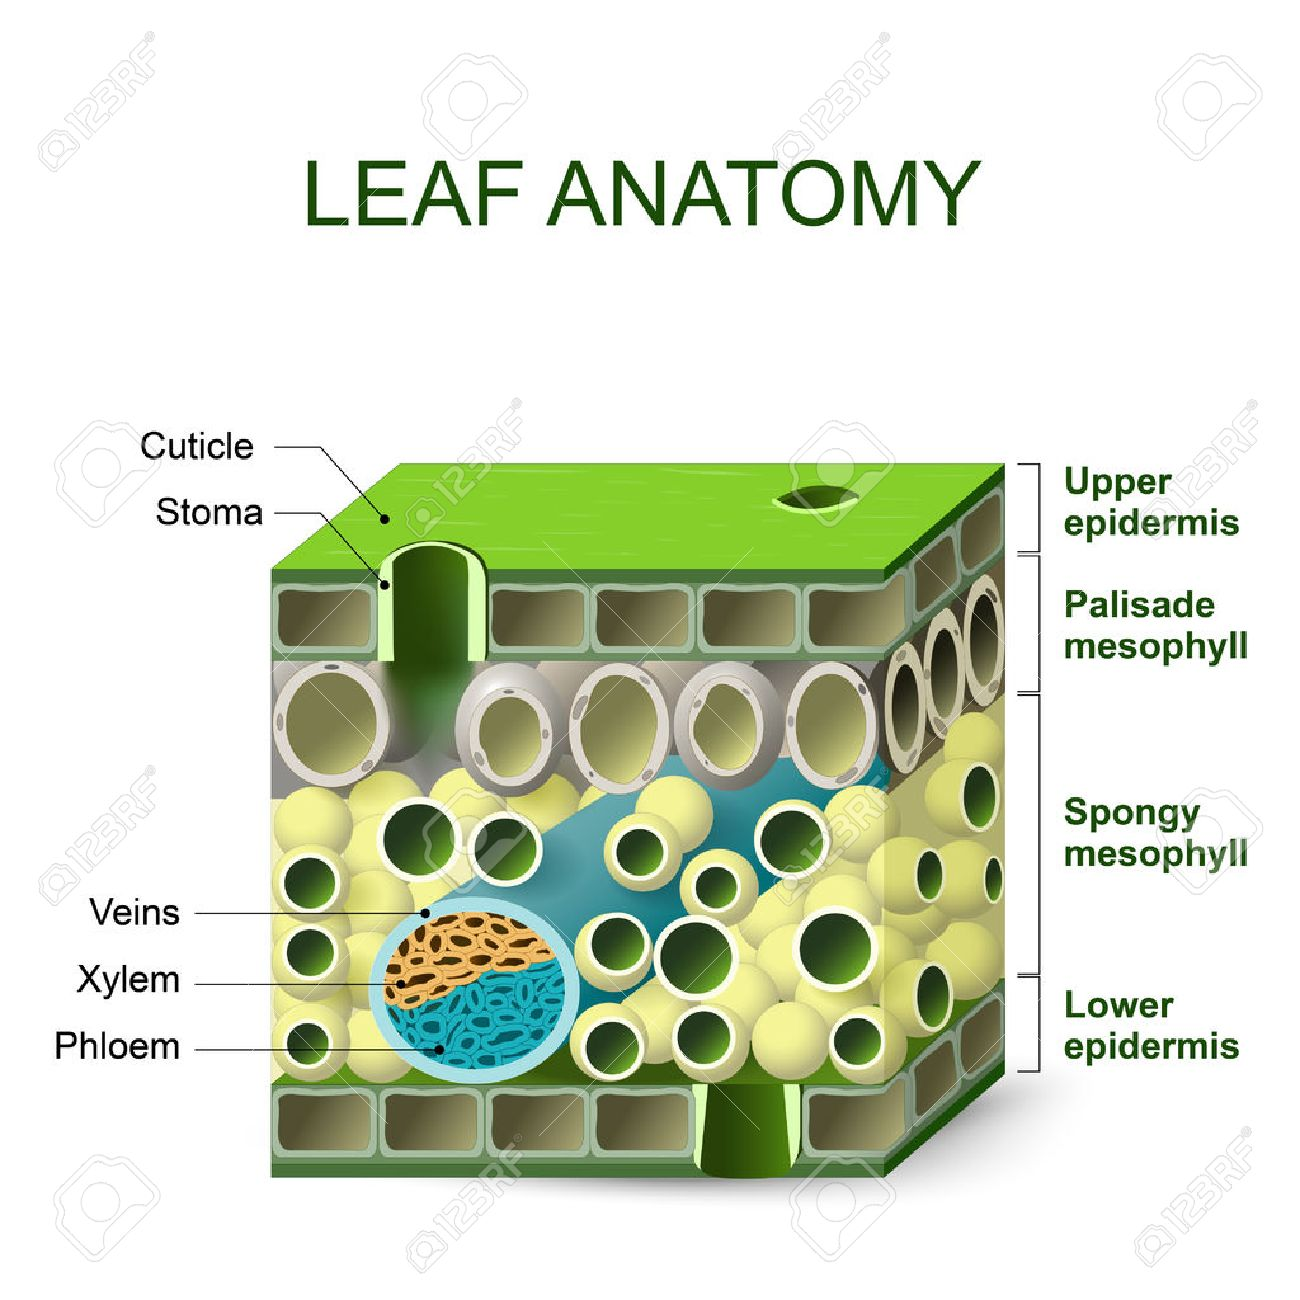 Leaf anatomy diagram of leaf structure royalty free cliparts leaf anatomy diagram of leaf structure stock vector 63903573 pooptronica Choice Image